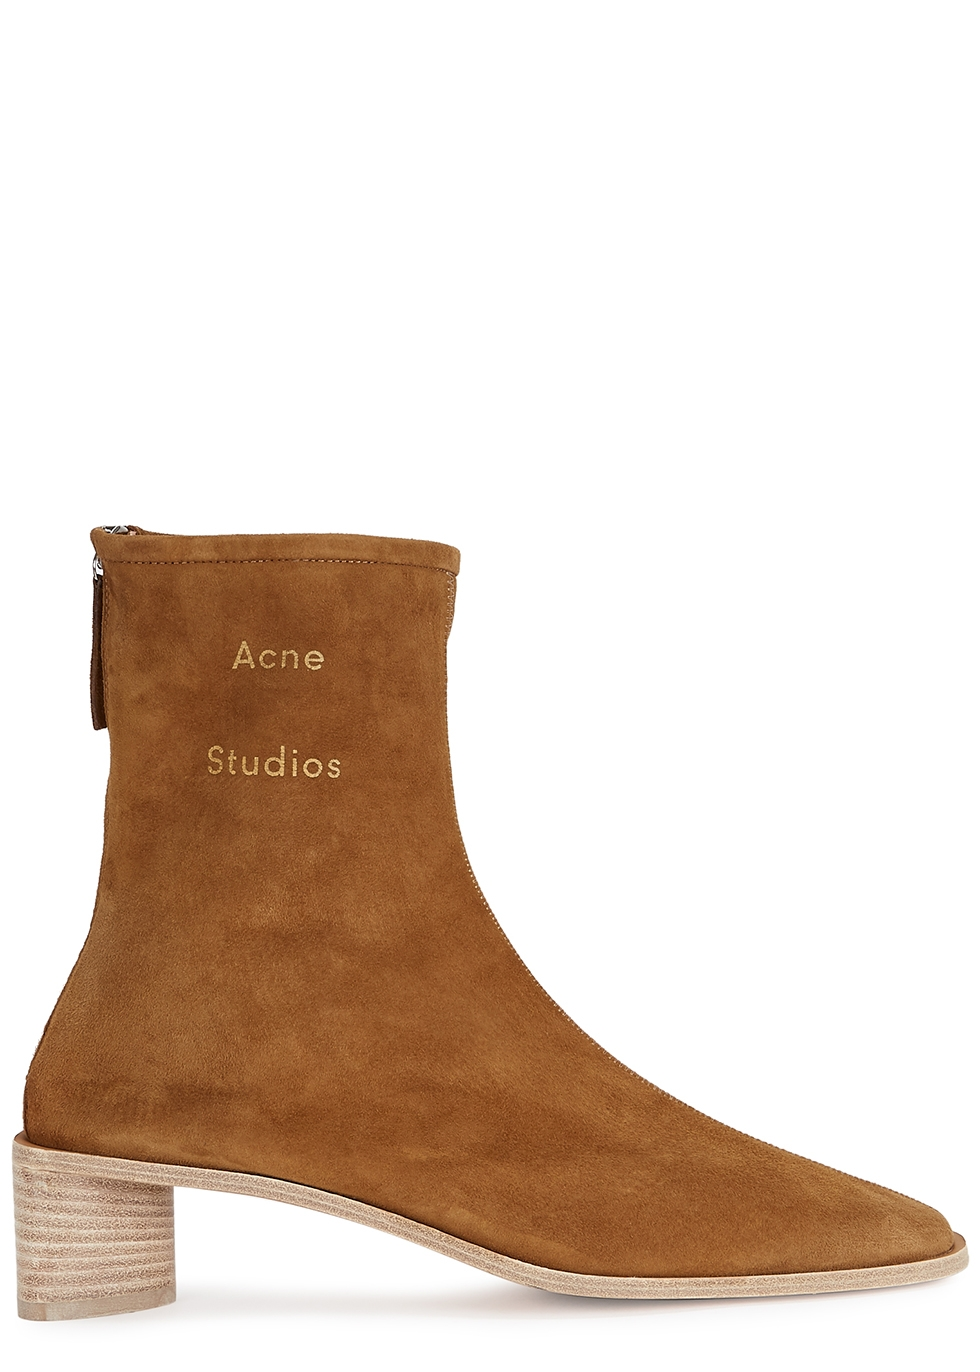 45 brown suede ankle boots